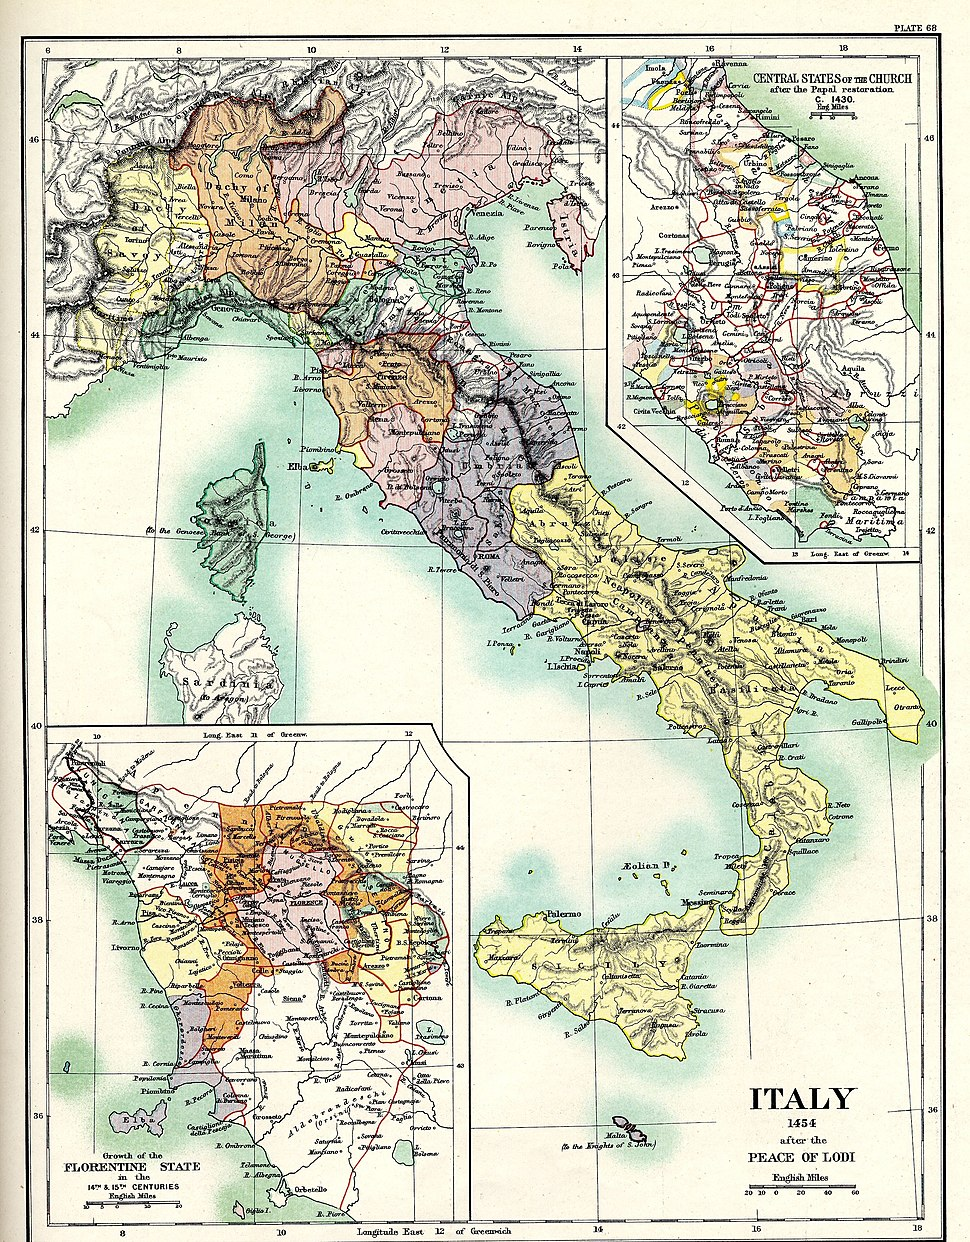 Italy 1454 after the Peace of Lodi